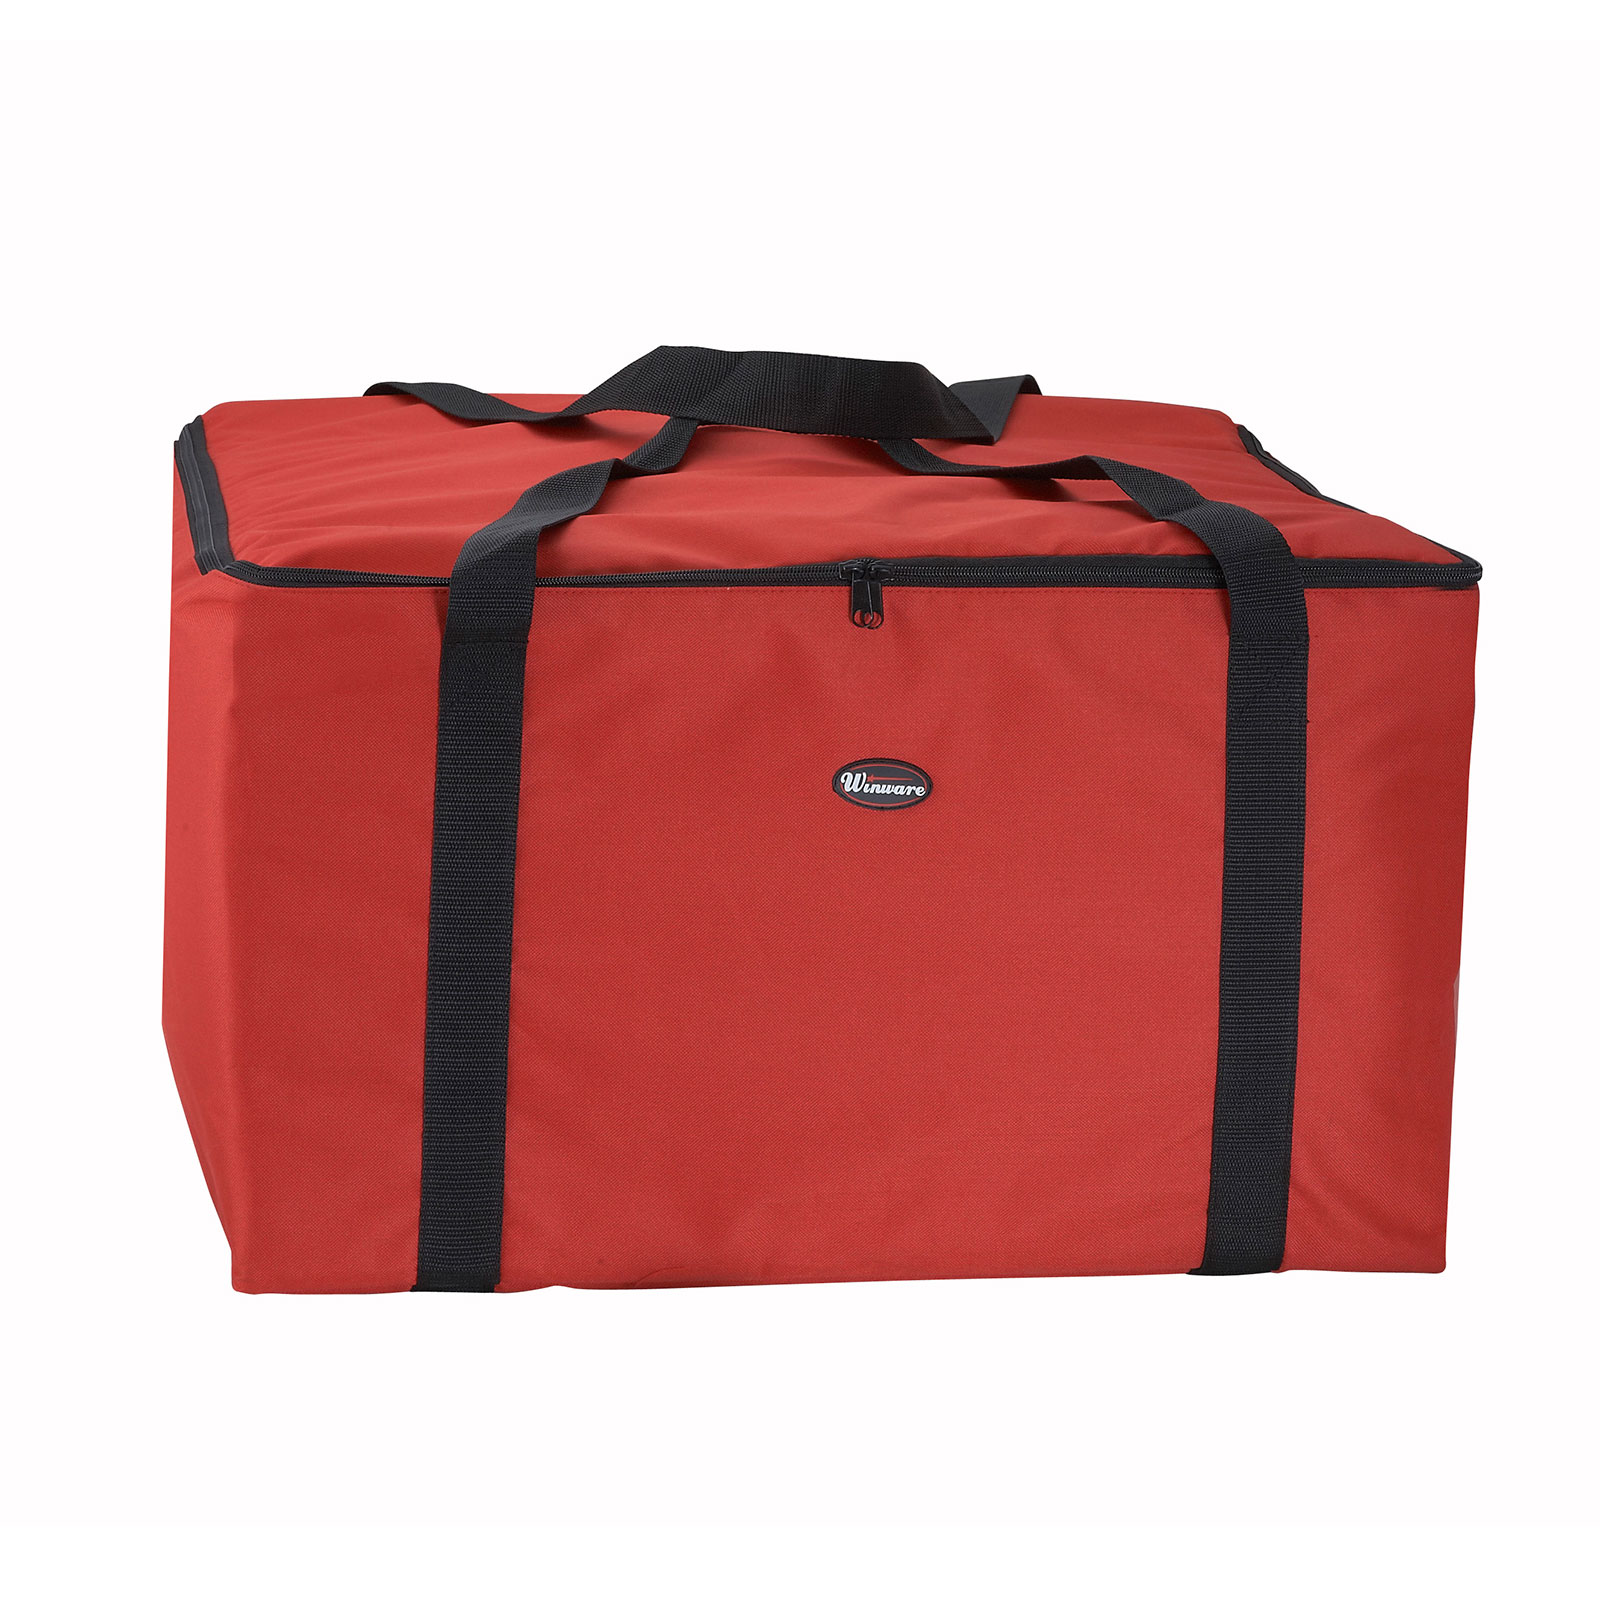 Winco BGDV-22 food carrier, soft material